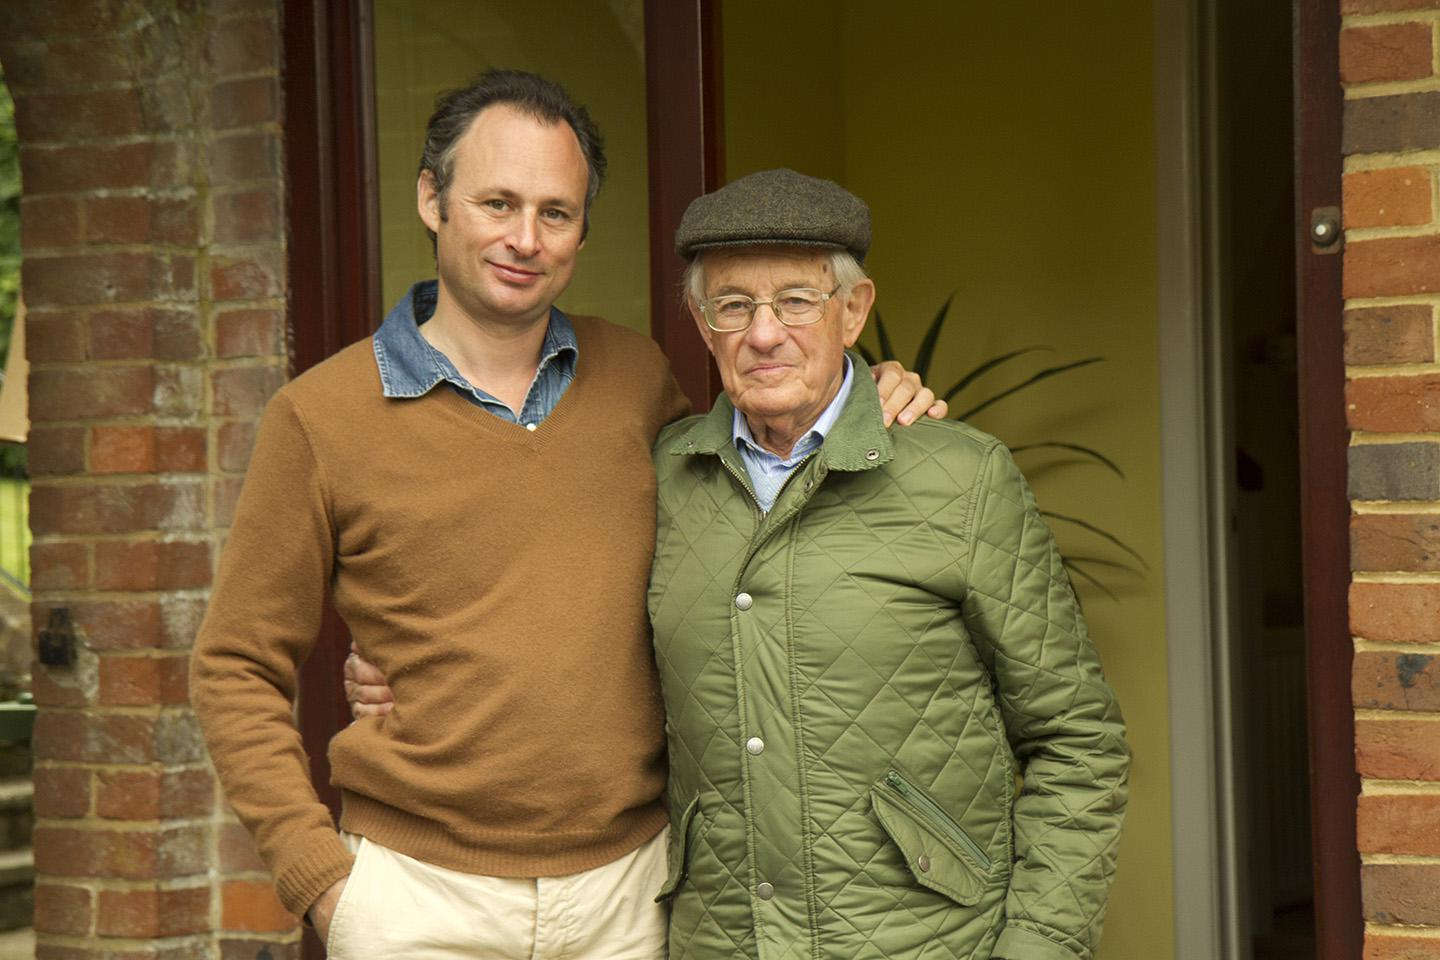 Edgar Feuchtwanger (right) is pictured with his co-author, Bertil Scali.